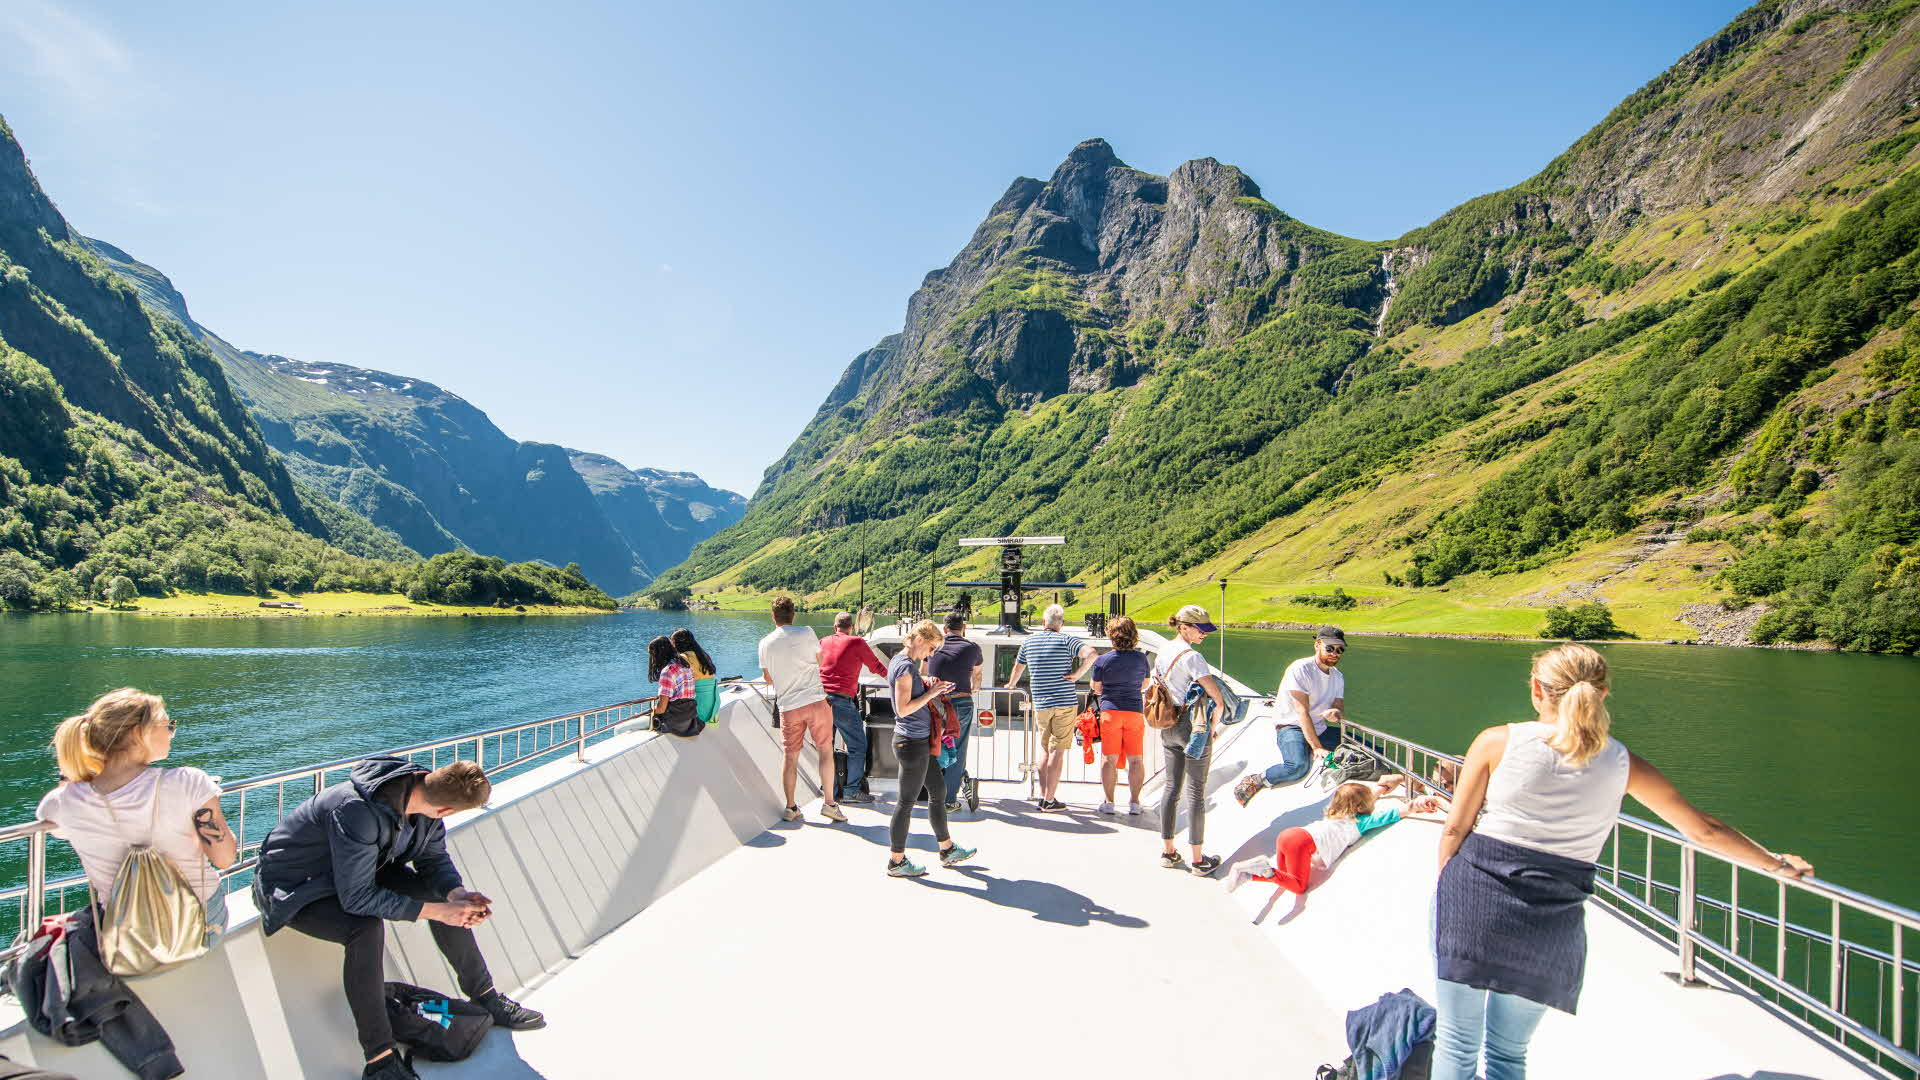 Tourists enjoying the view of Bakka from the roof of a boat on the Nærøyfjord